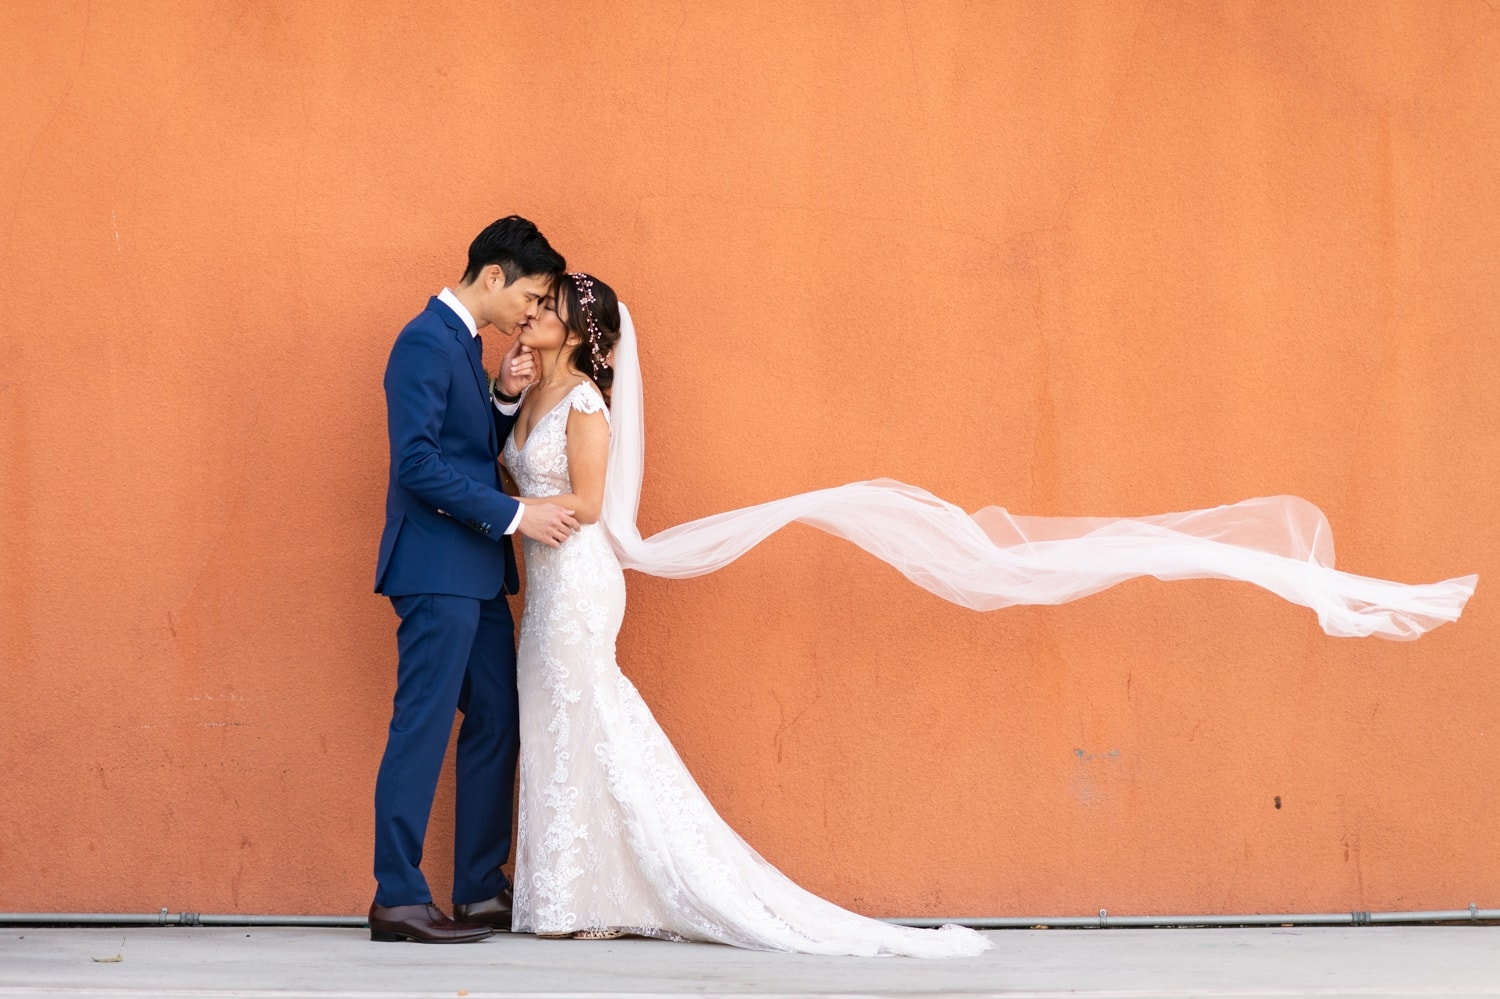 Bride and groom kissing in front of an orange wall in San Diego.